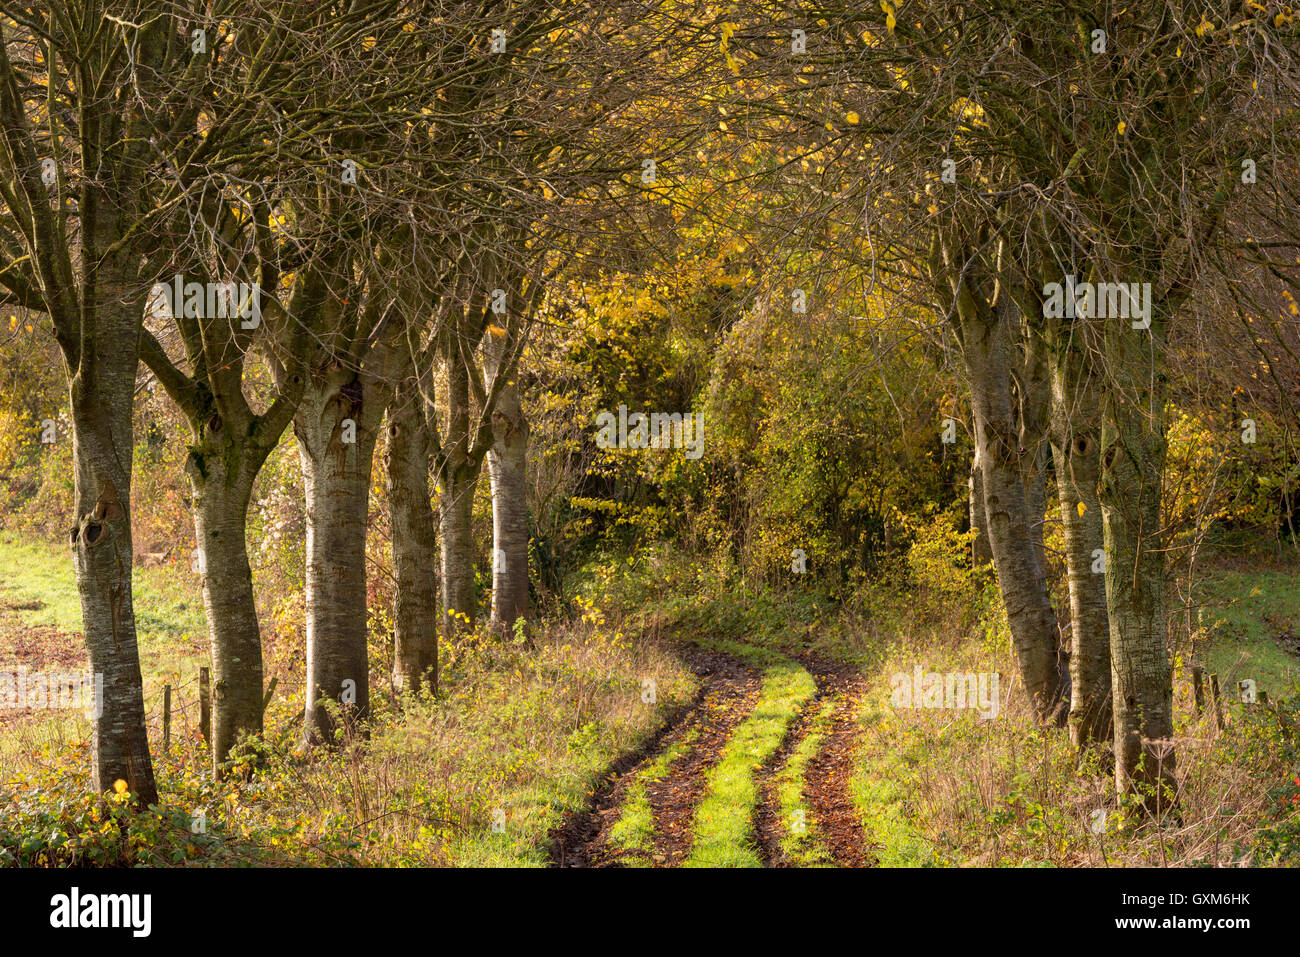 Tree lined track in rural Dorset, England.  Autumn (November) 2014. - Stock Image